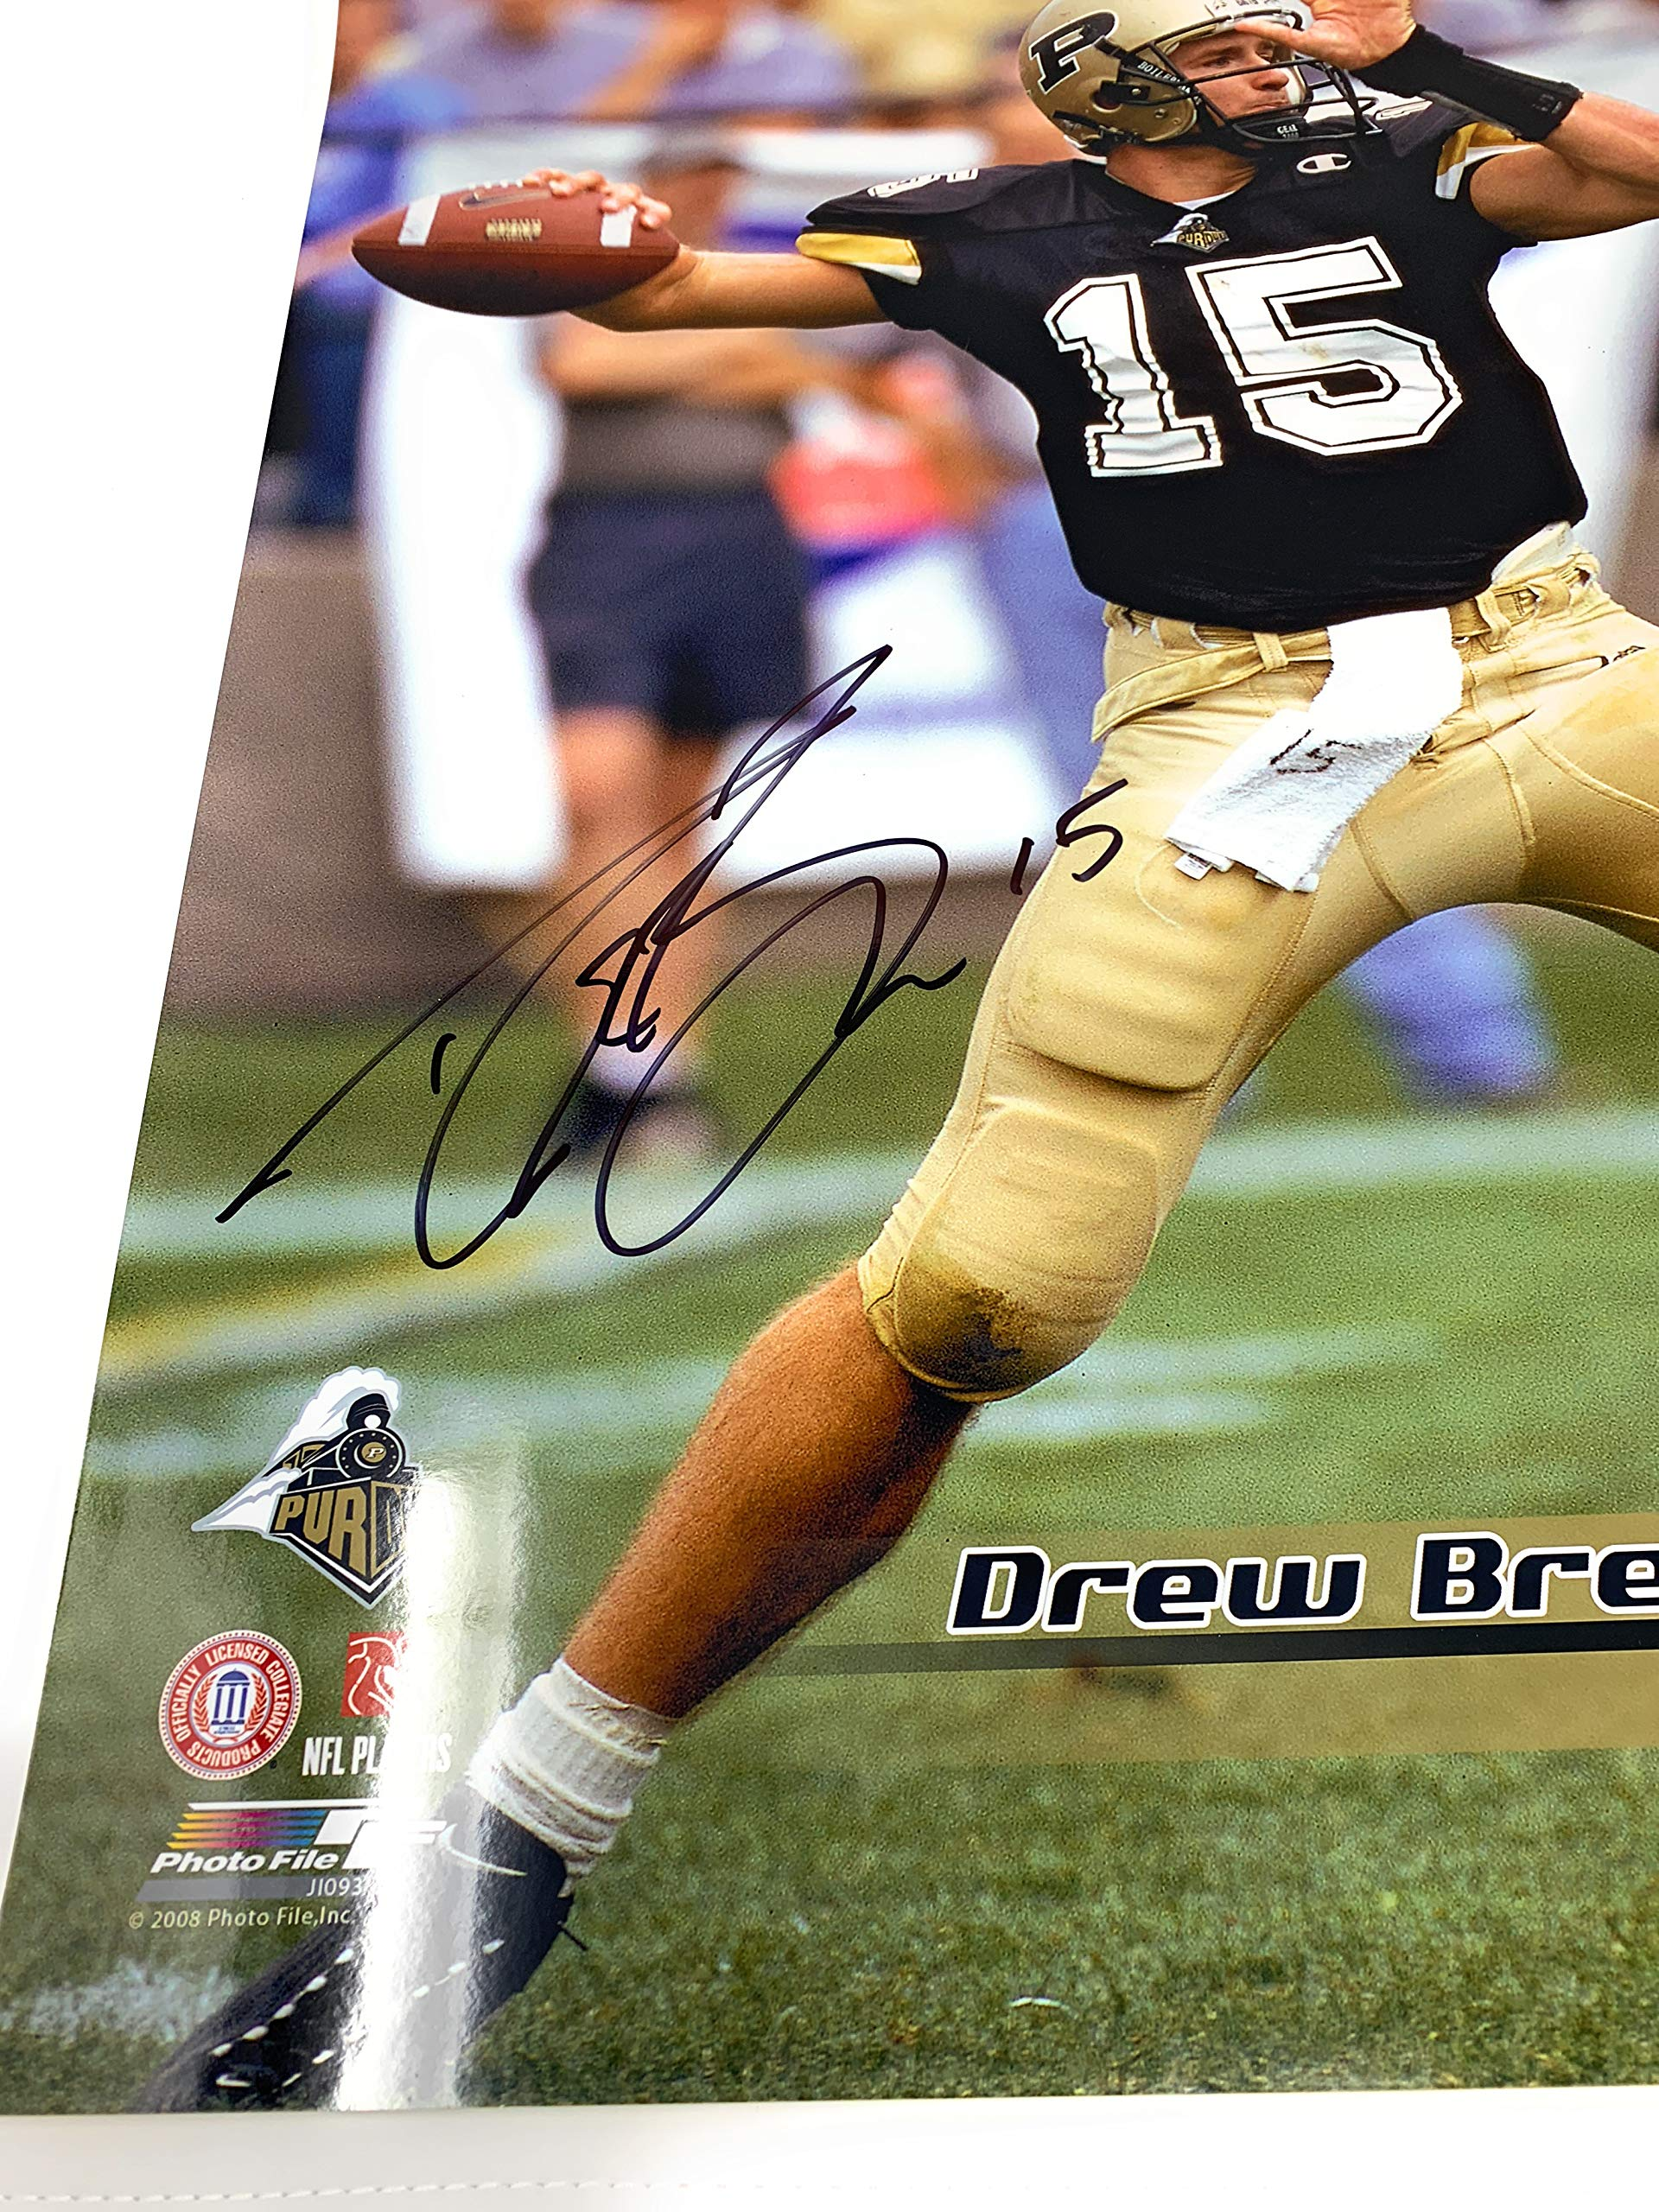 Drew Brees Purdue Boilermakers Signed Autograph 16x20 Photo Tristar Authentic Certified